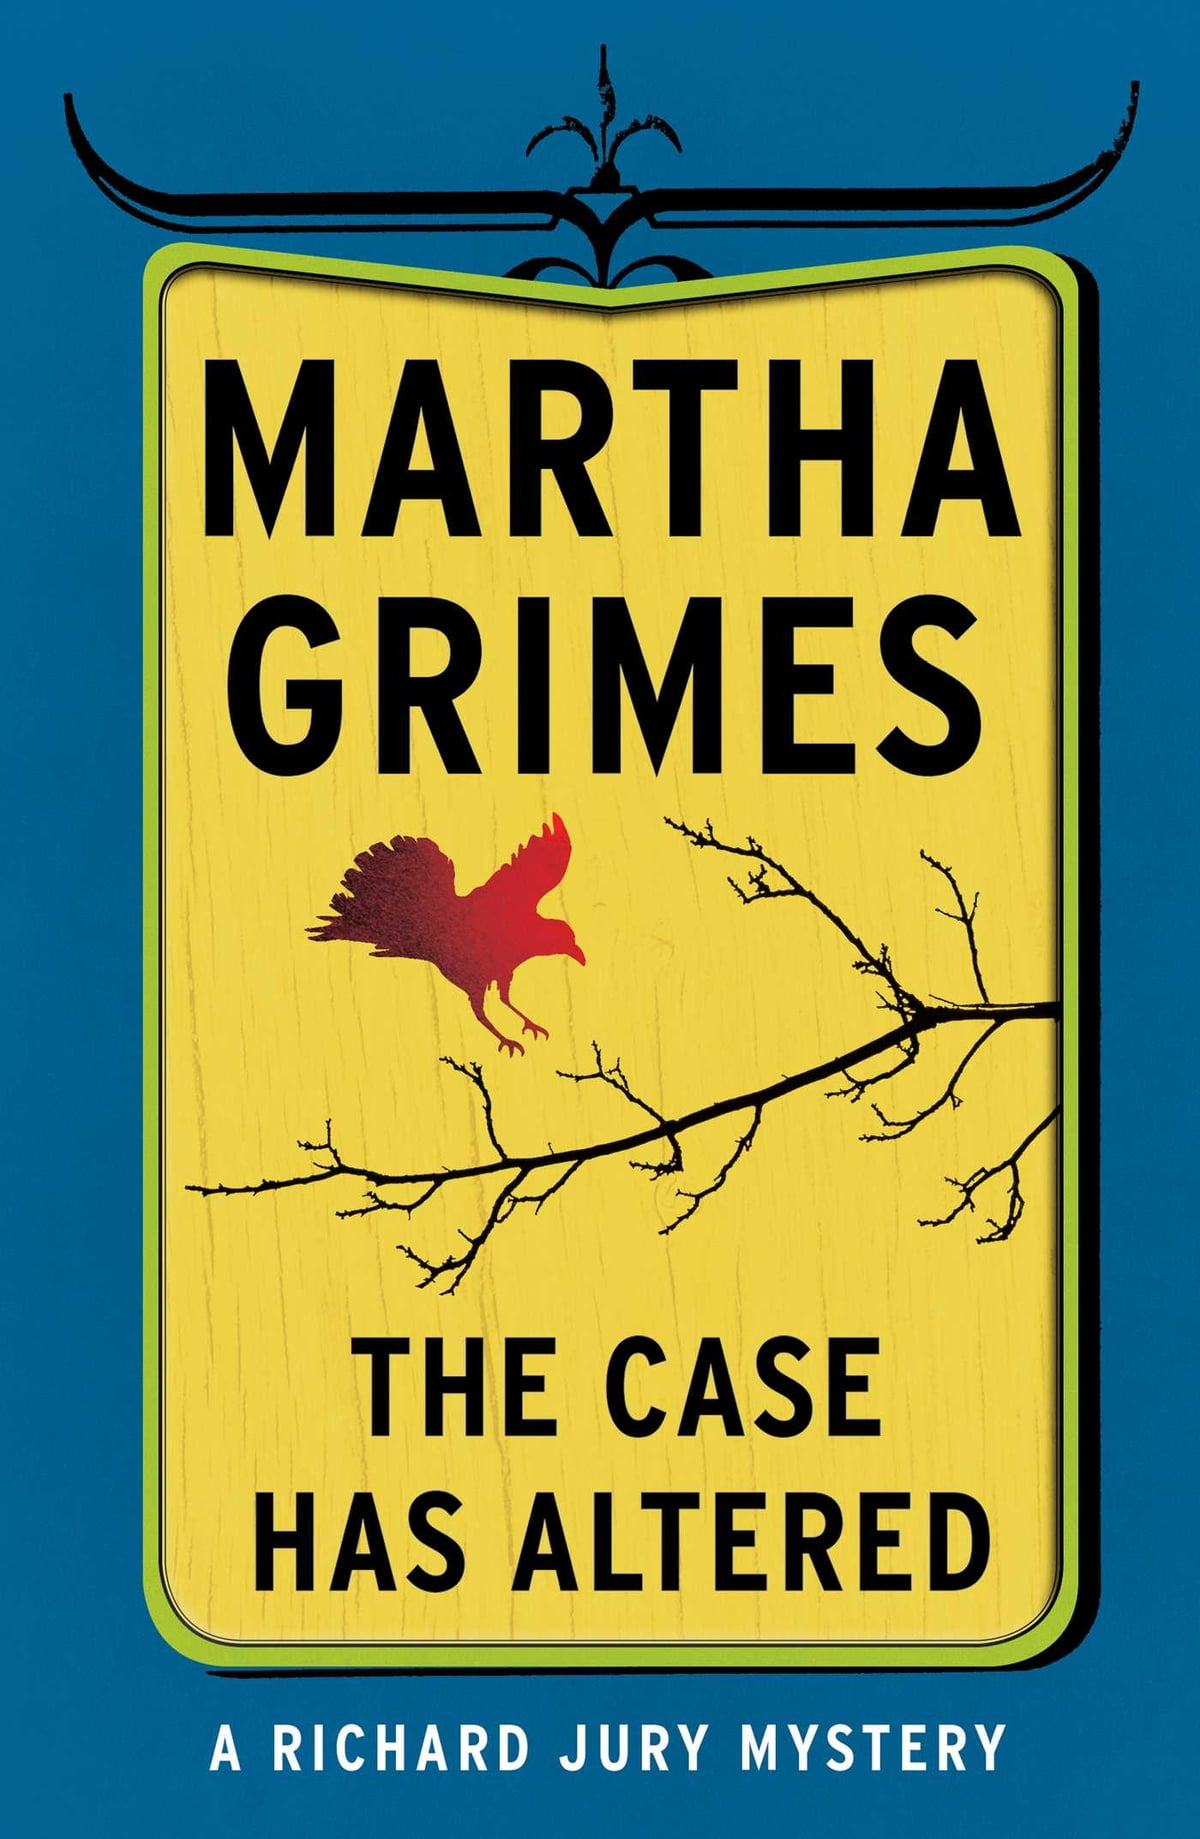 The case has altered ebook by martha grimes 9781476732978 the case has altered ebook by martha grimes 9781476732978 rakuten kobo fandeluxe Epub